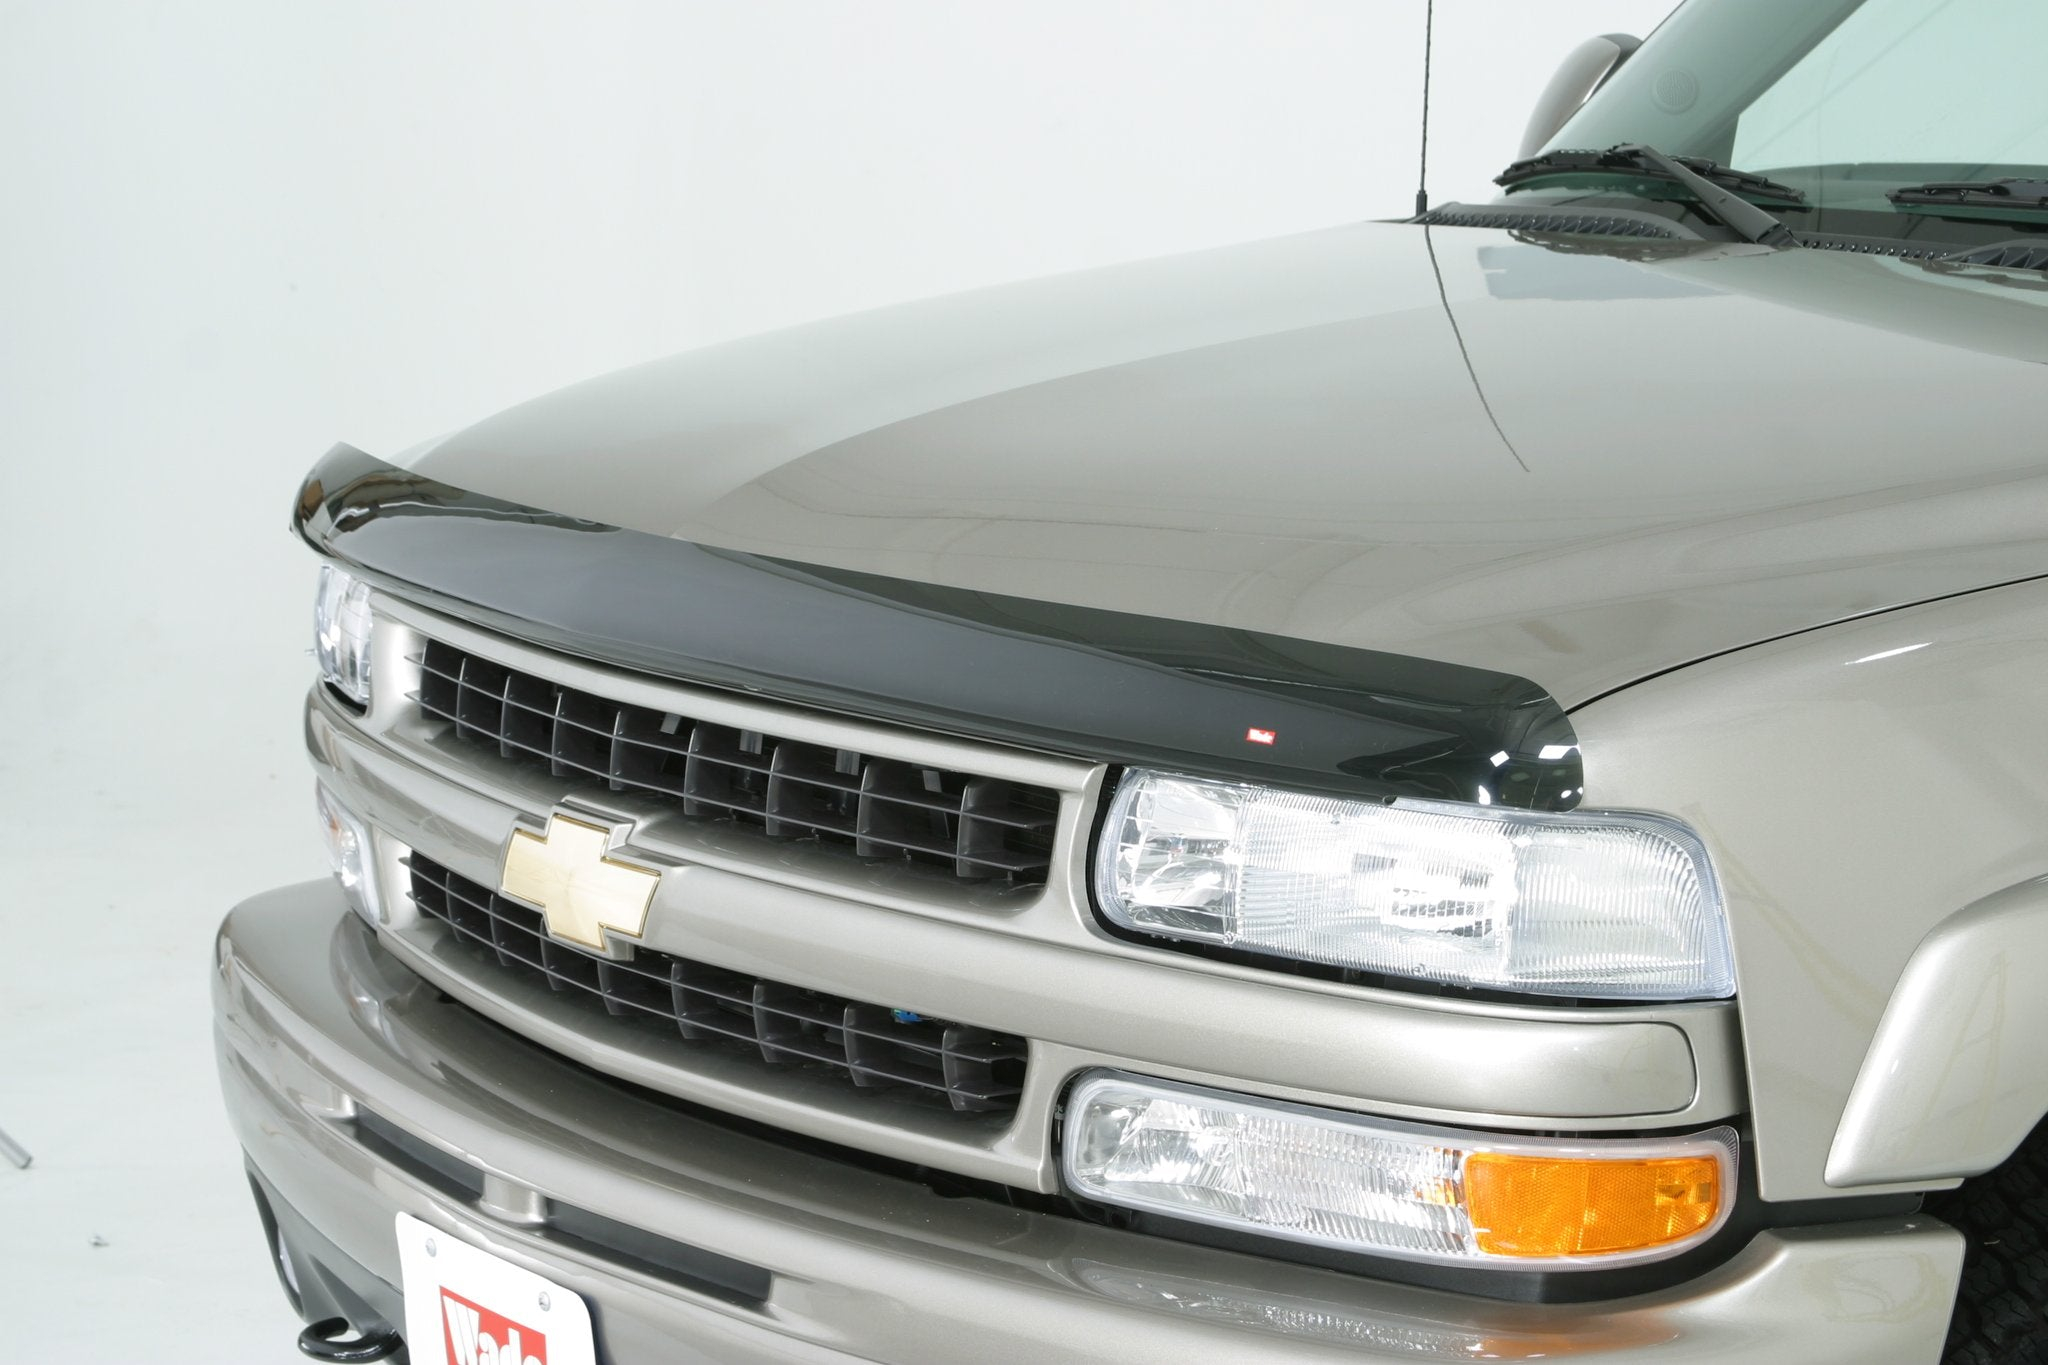 2000 GMC Sonoma Bug Shield